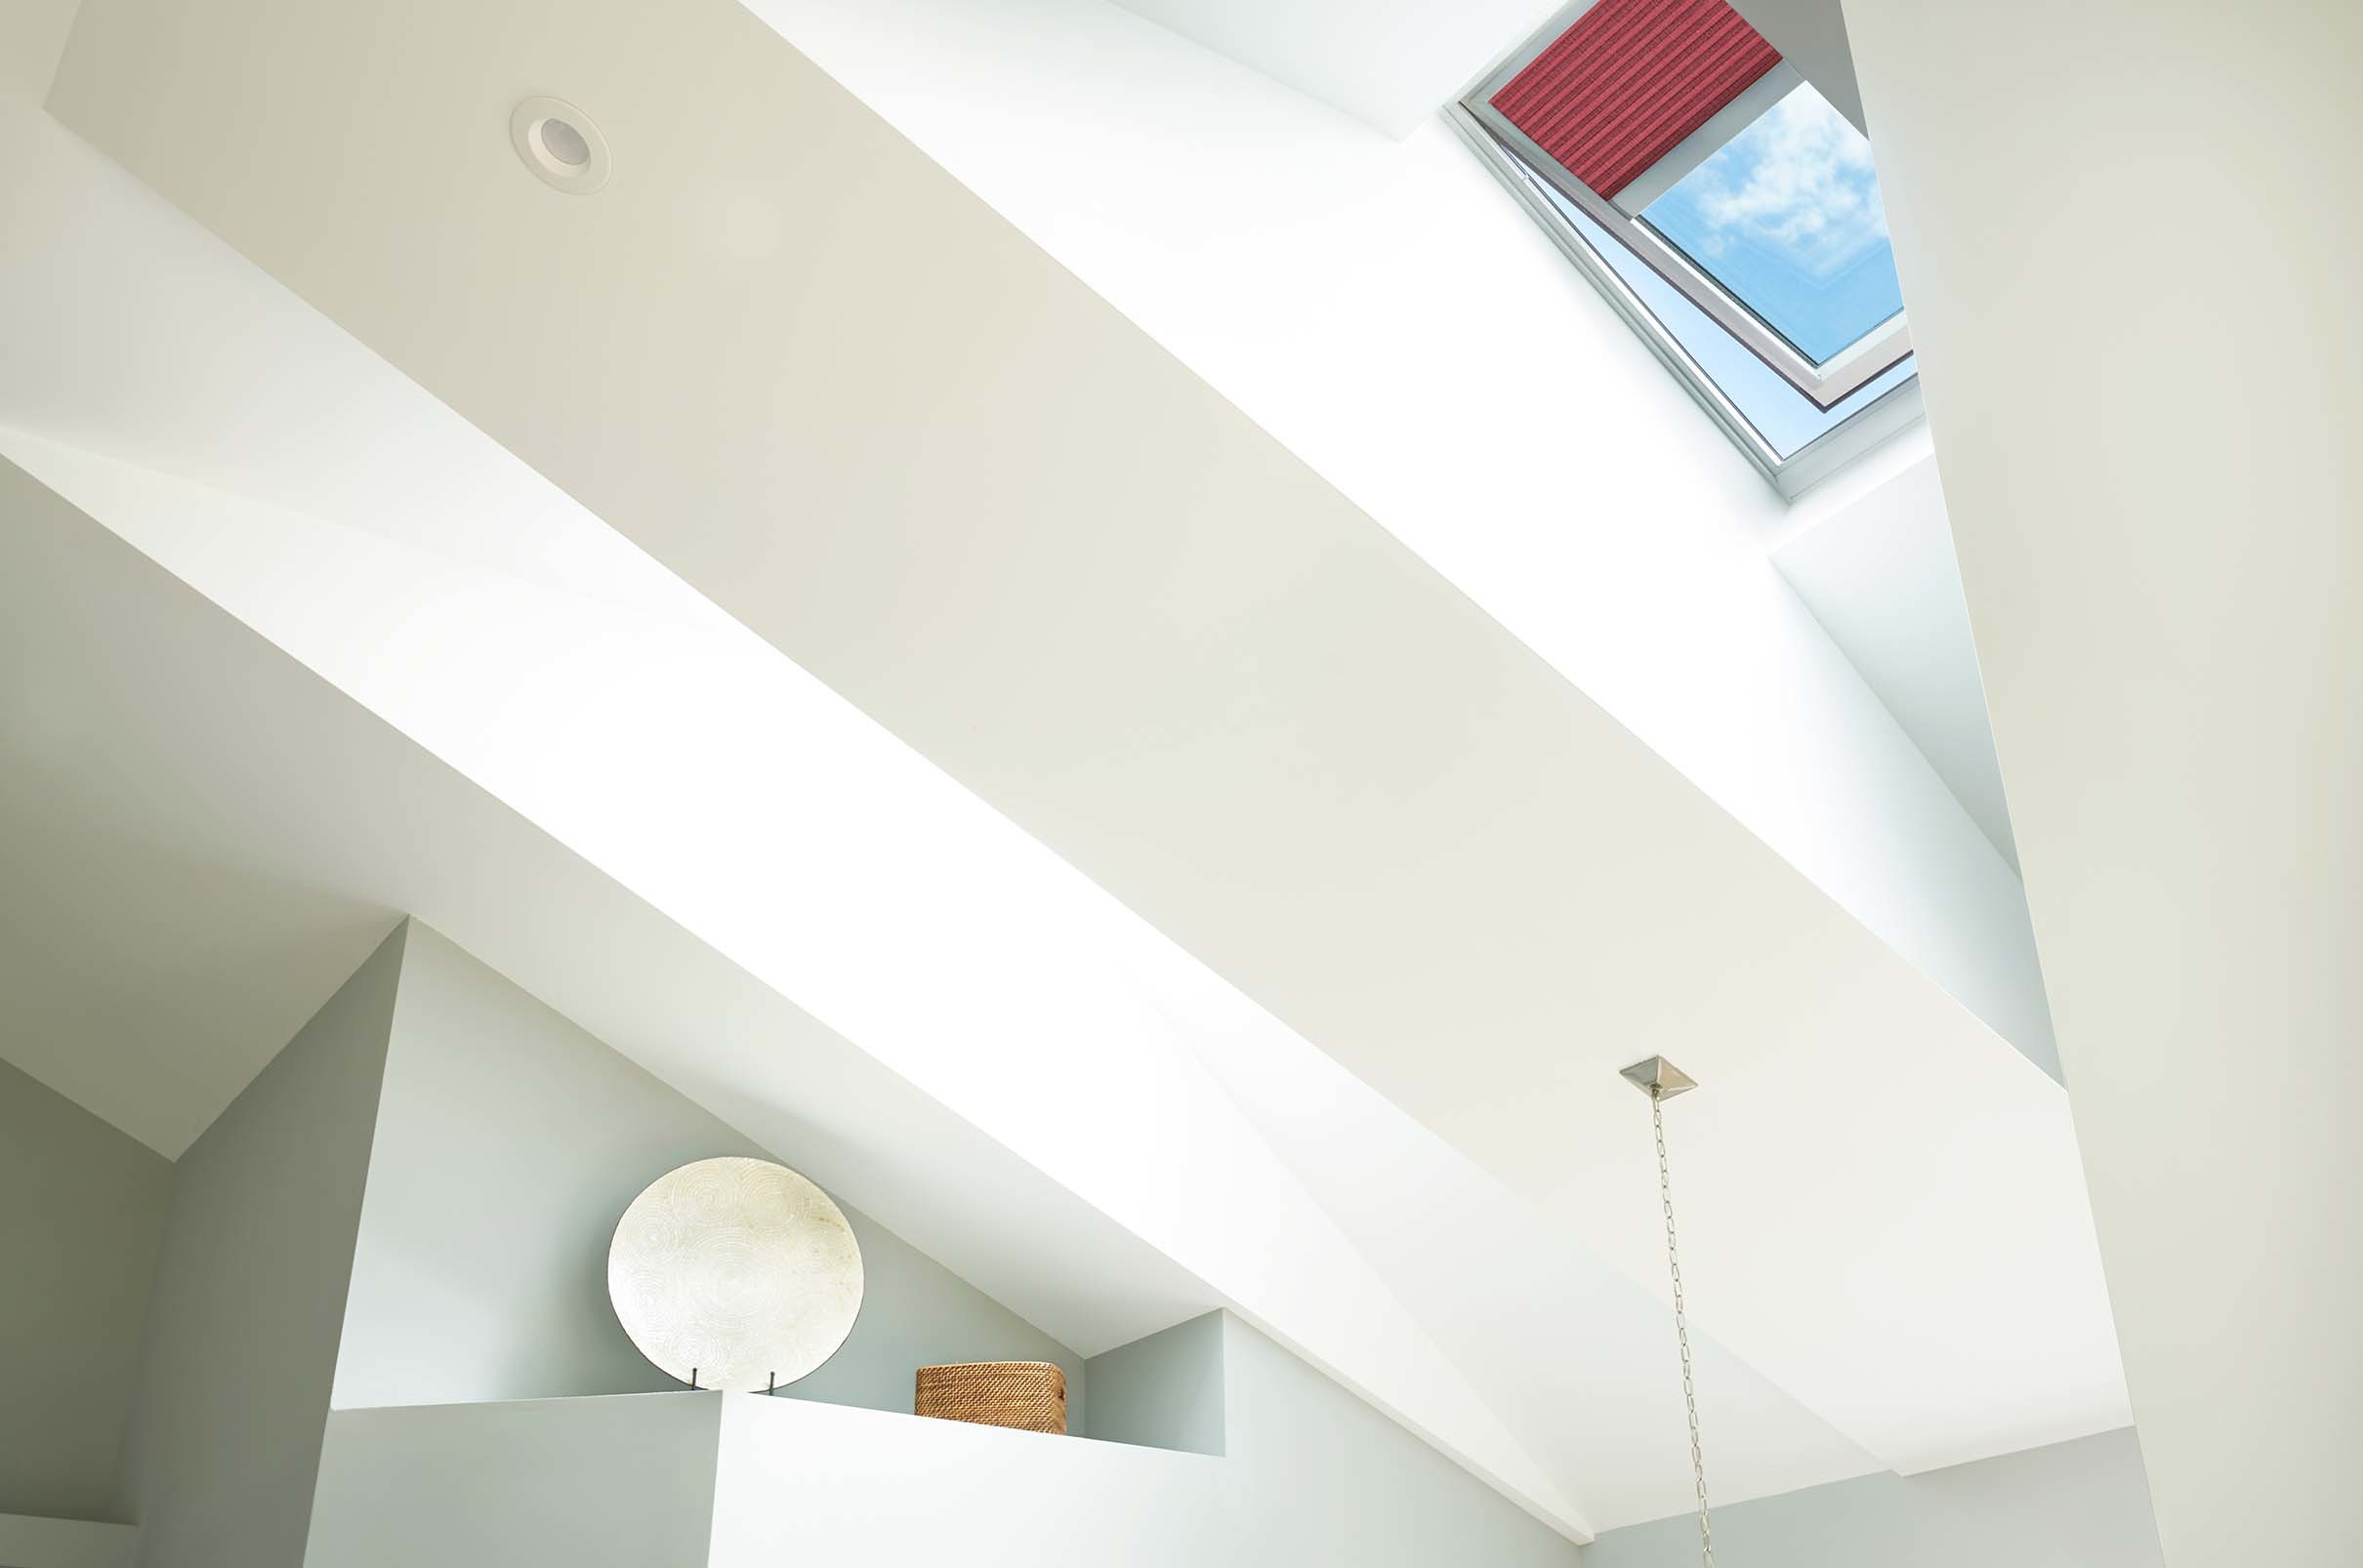 Skylight in a vaulted ceiling with a red shade partially extended